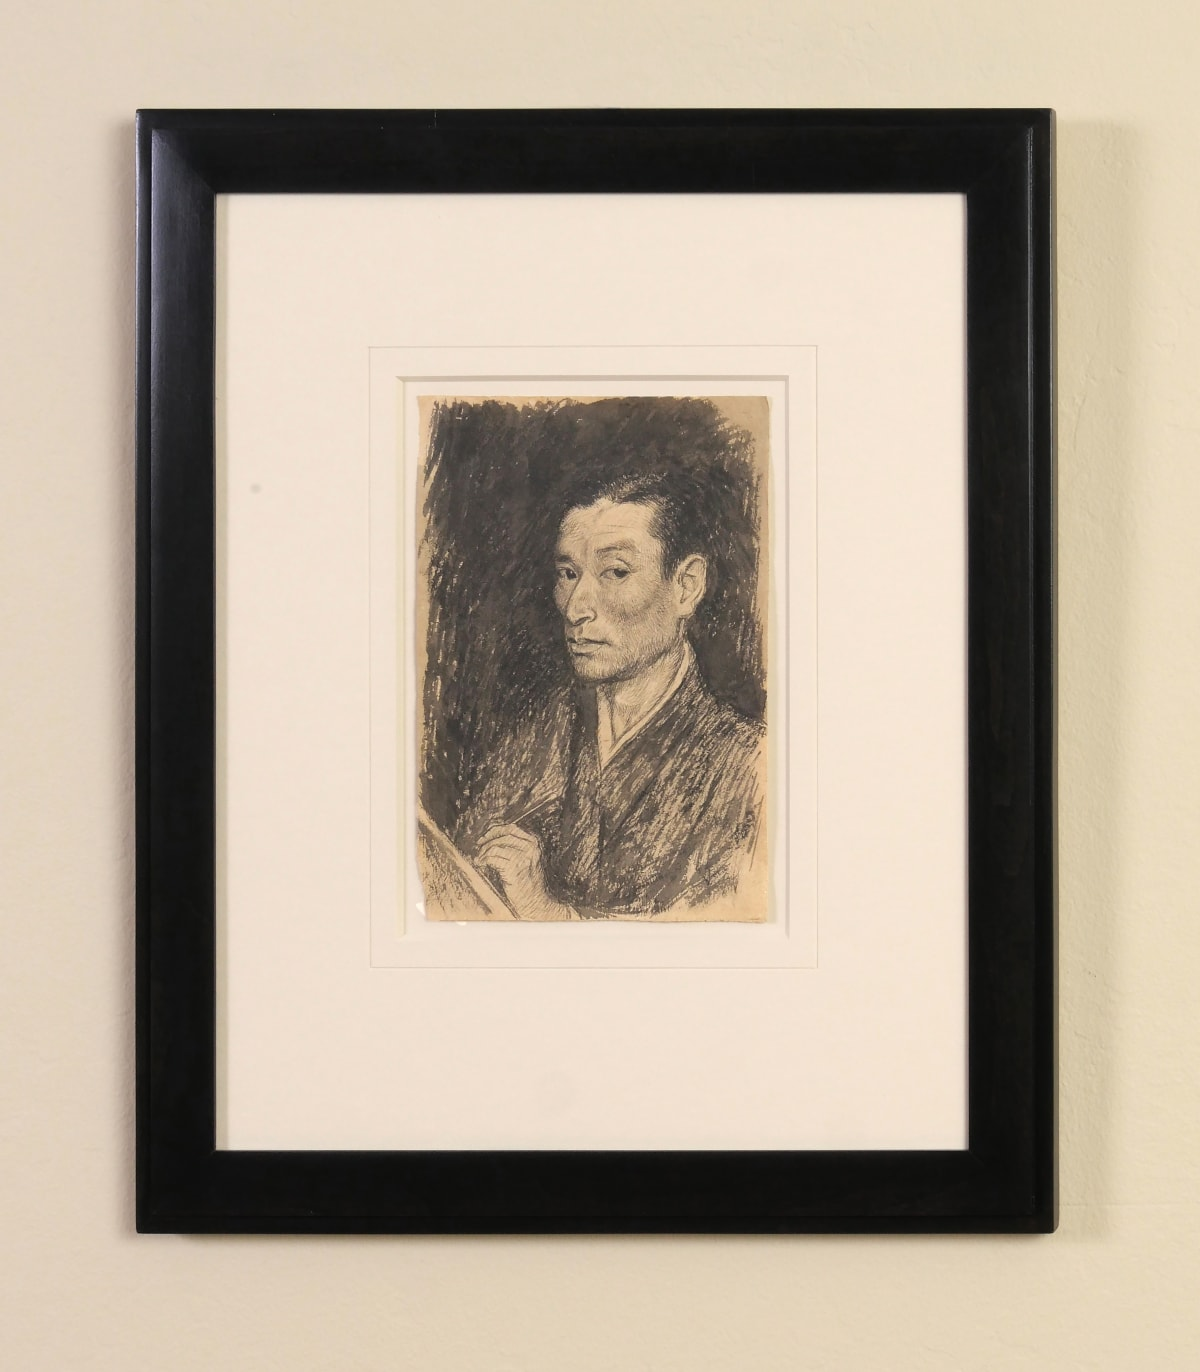 Chusei Inagaki (1897-1922), Self Portrait